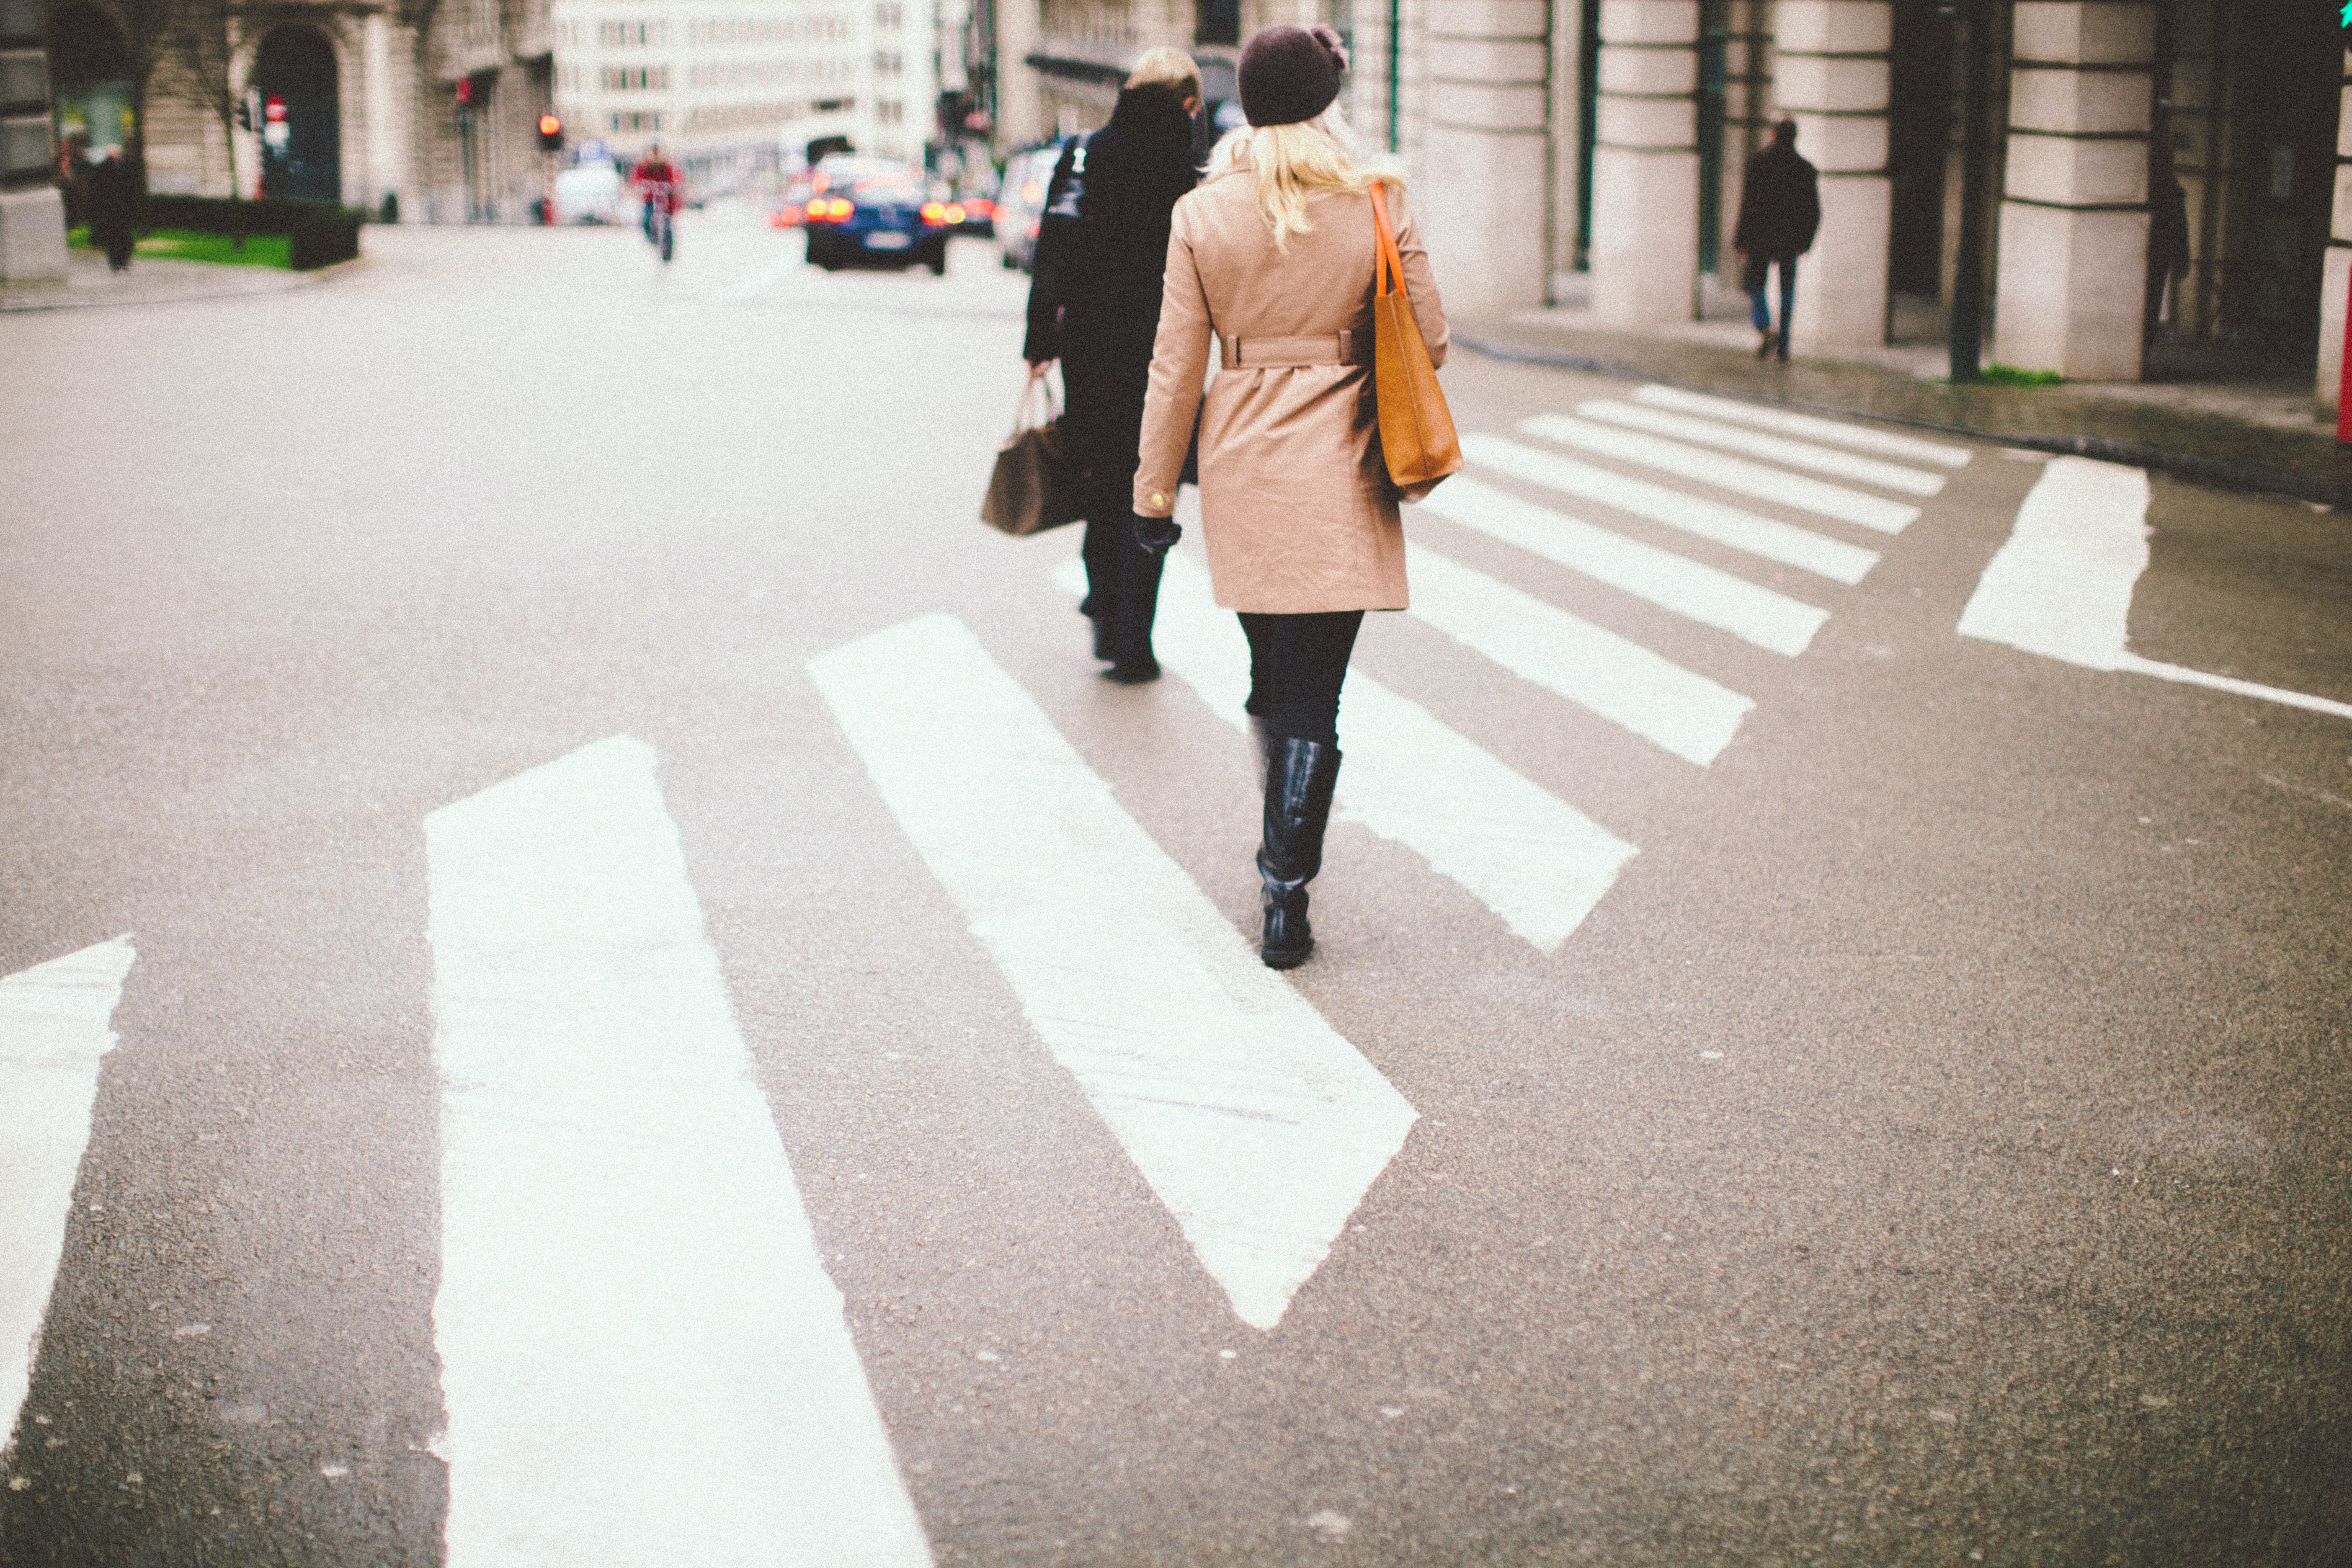 Pedestrians are crossing the road in the crosswalk while the traffic stops in the distance.